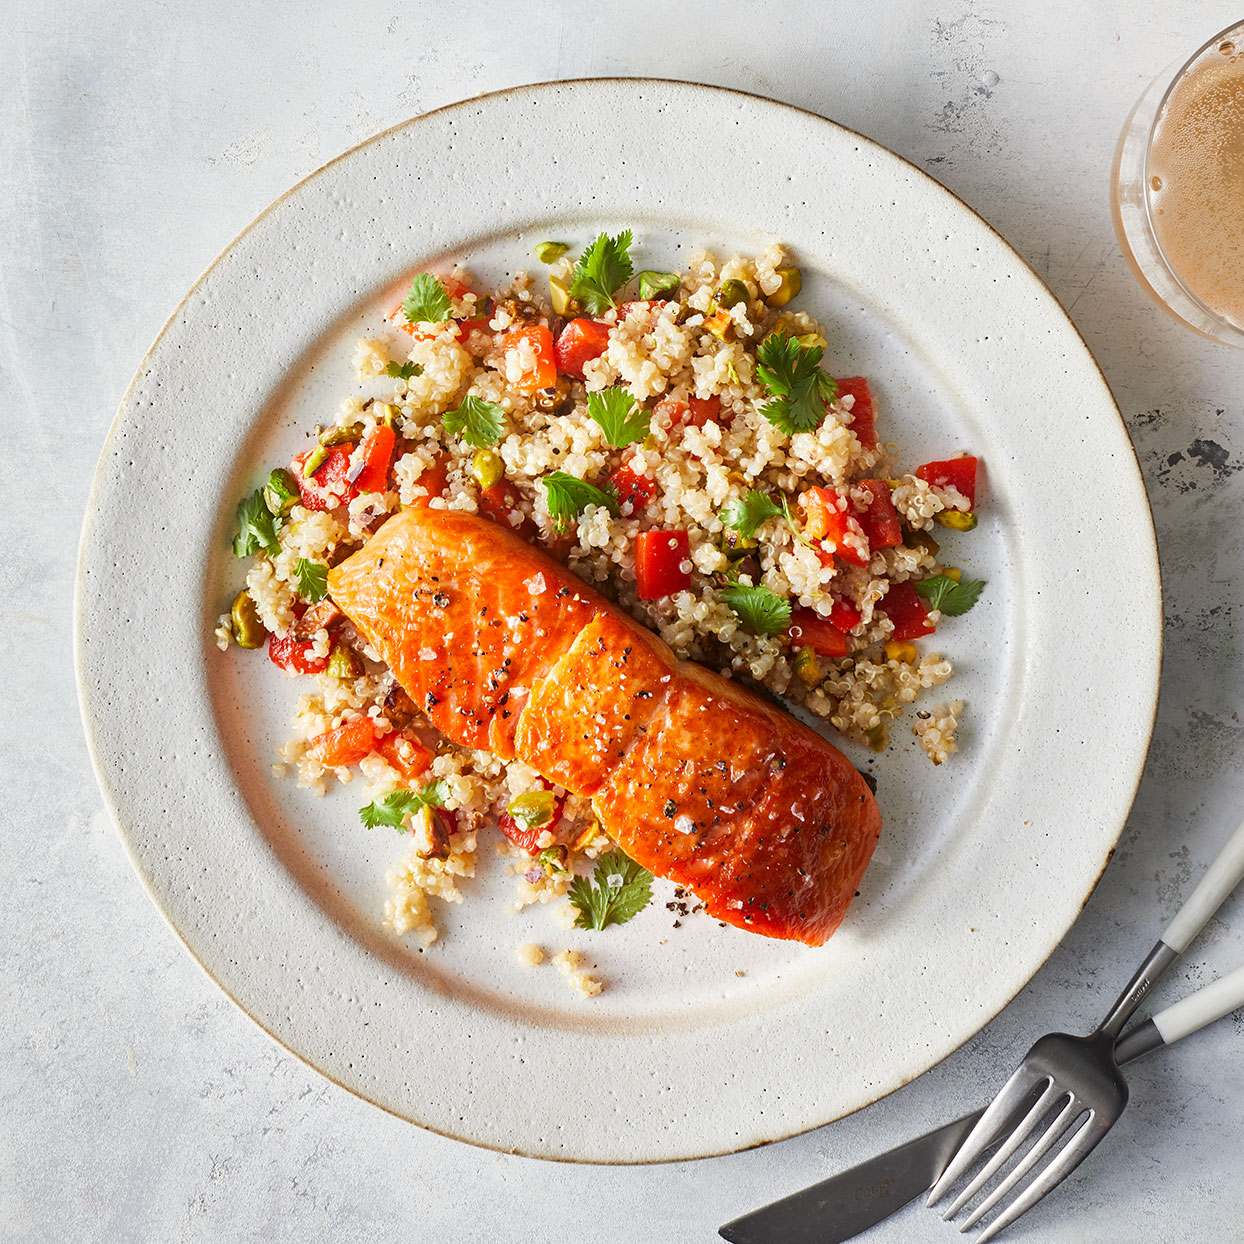 salmon with quinoa salad on a white plate